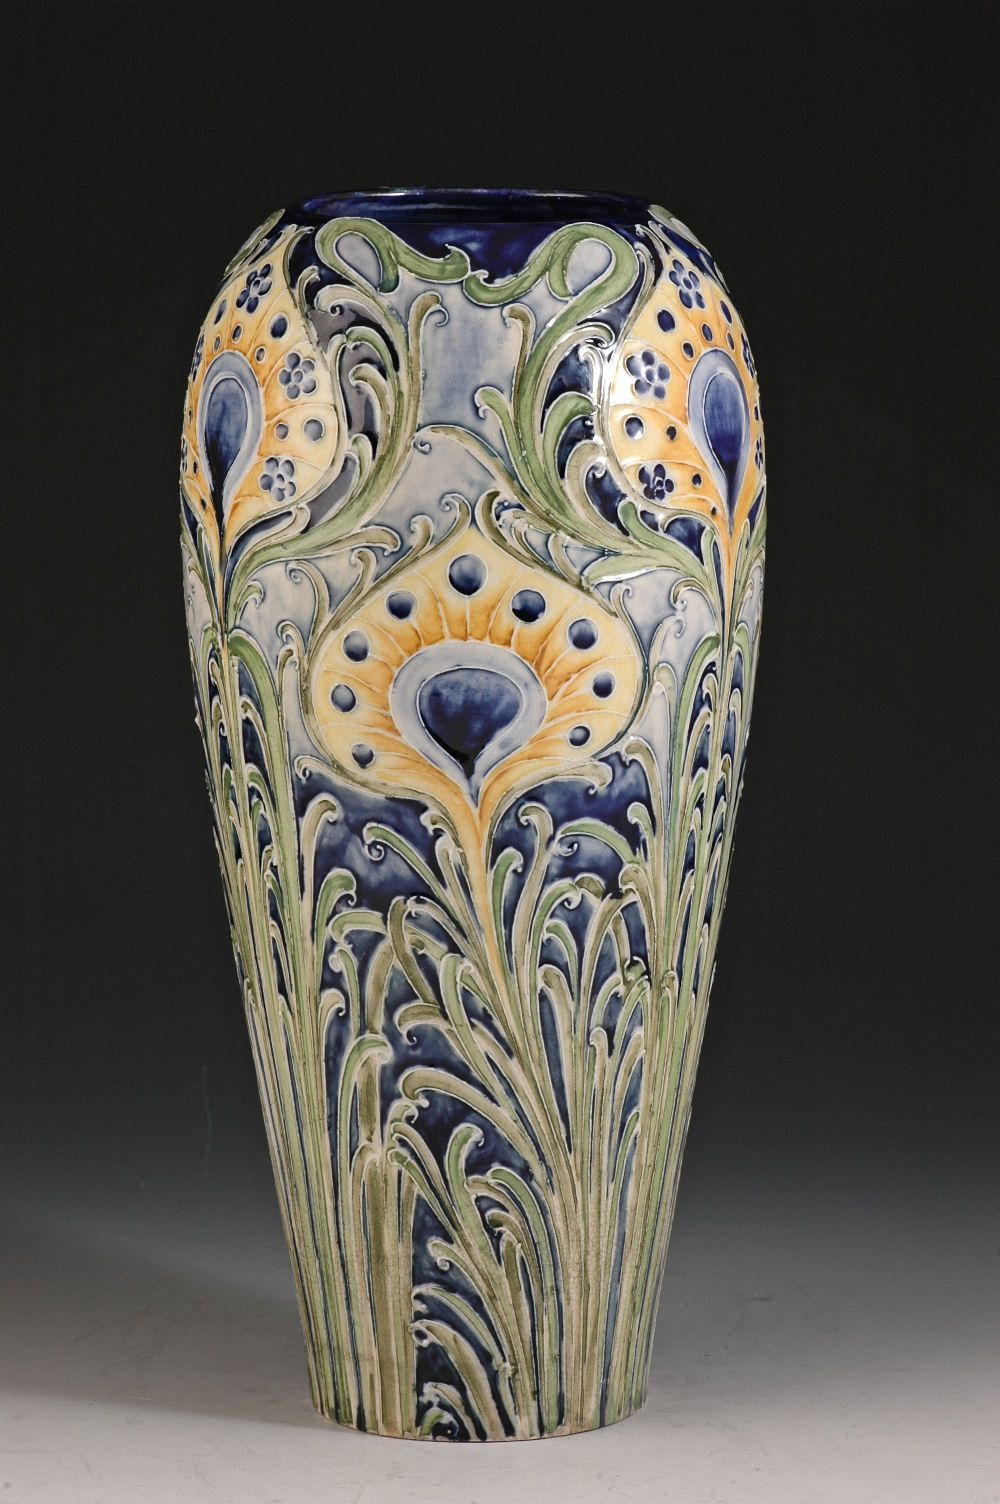 Andrew Muir | Clarice Cliff, Art Deco Pottery, Moorcroft and 20th Century Ceramics Dealermoorcroft pottery 'Peacock feather' vase C1902